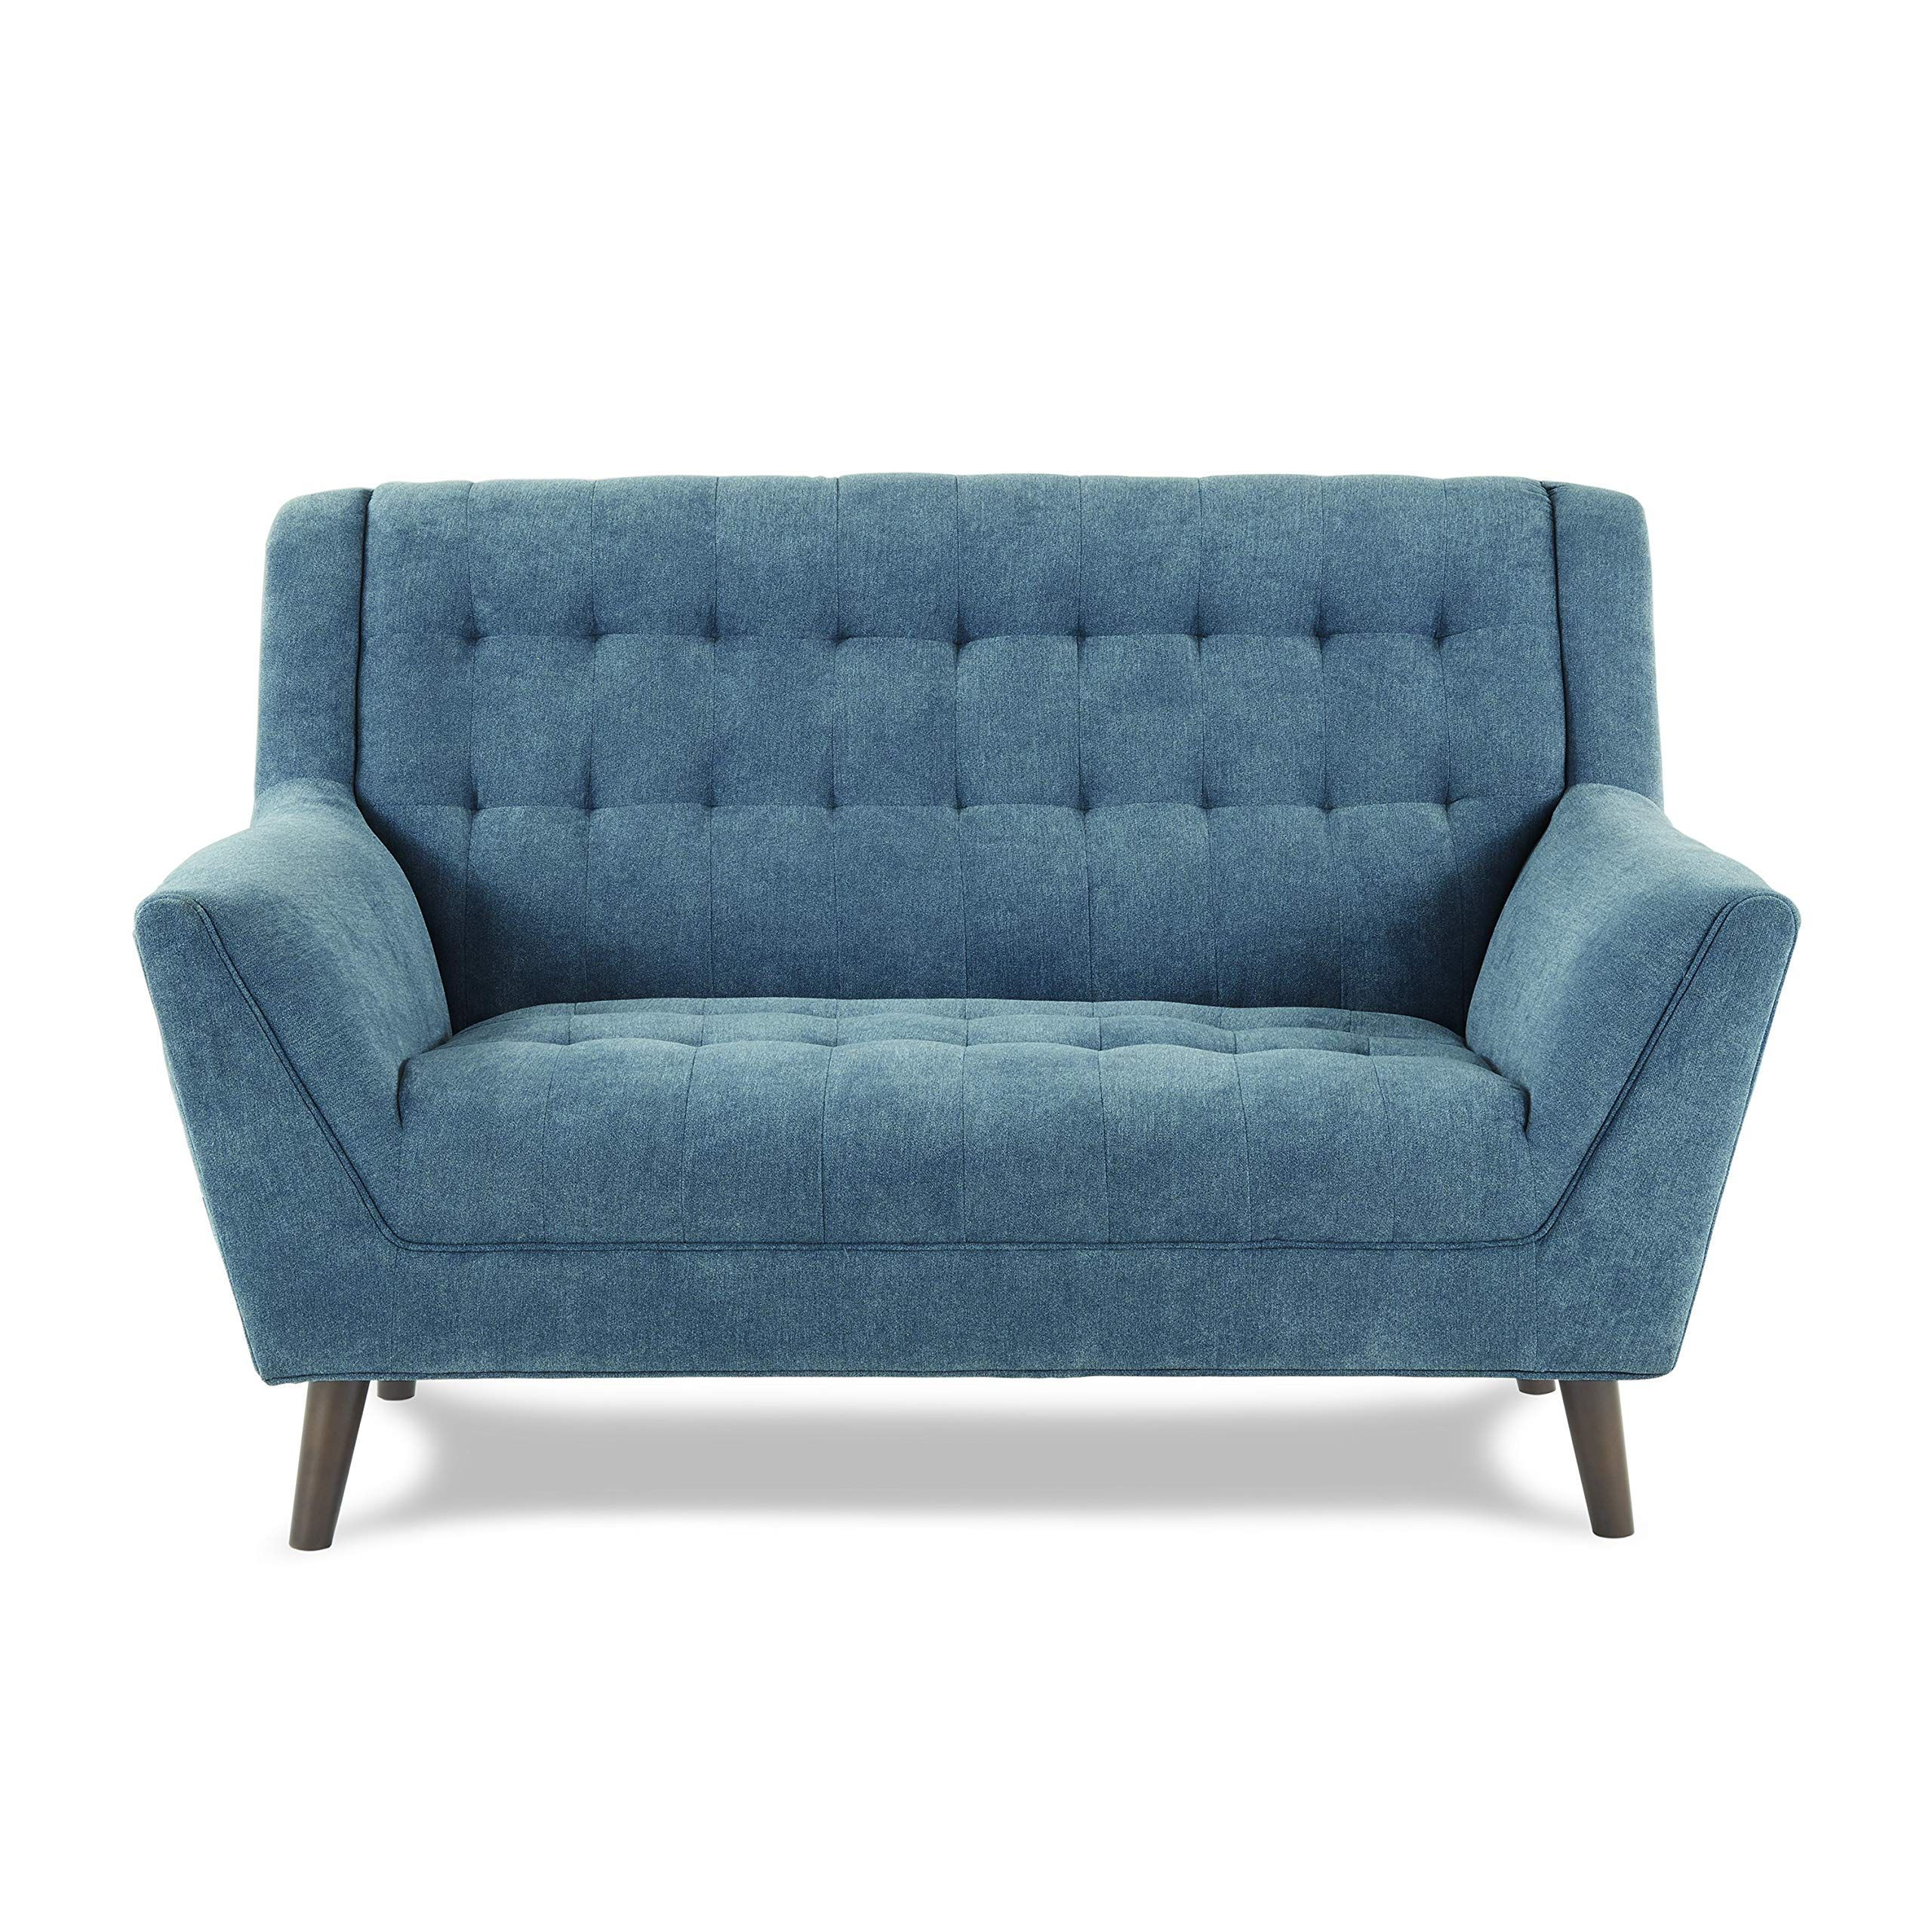 Homelegance Erath 63 Fabric Loveseat Blue In 2020 Love Seat Ikea Sofa Bed Cheap Couch